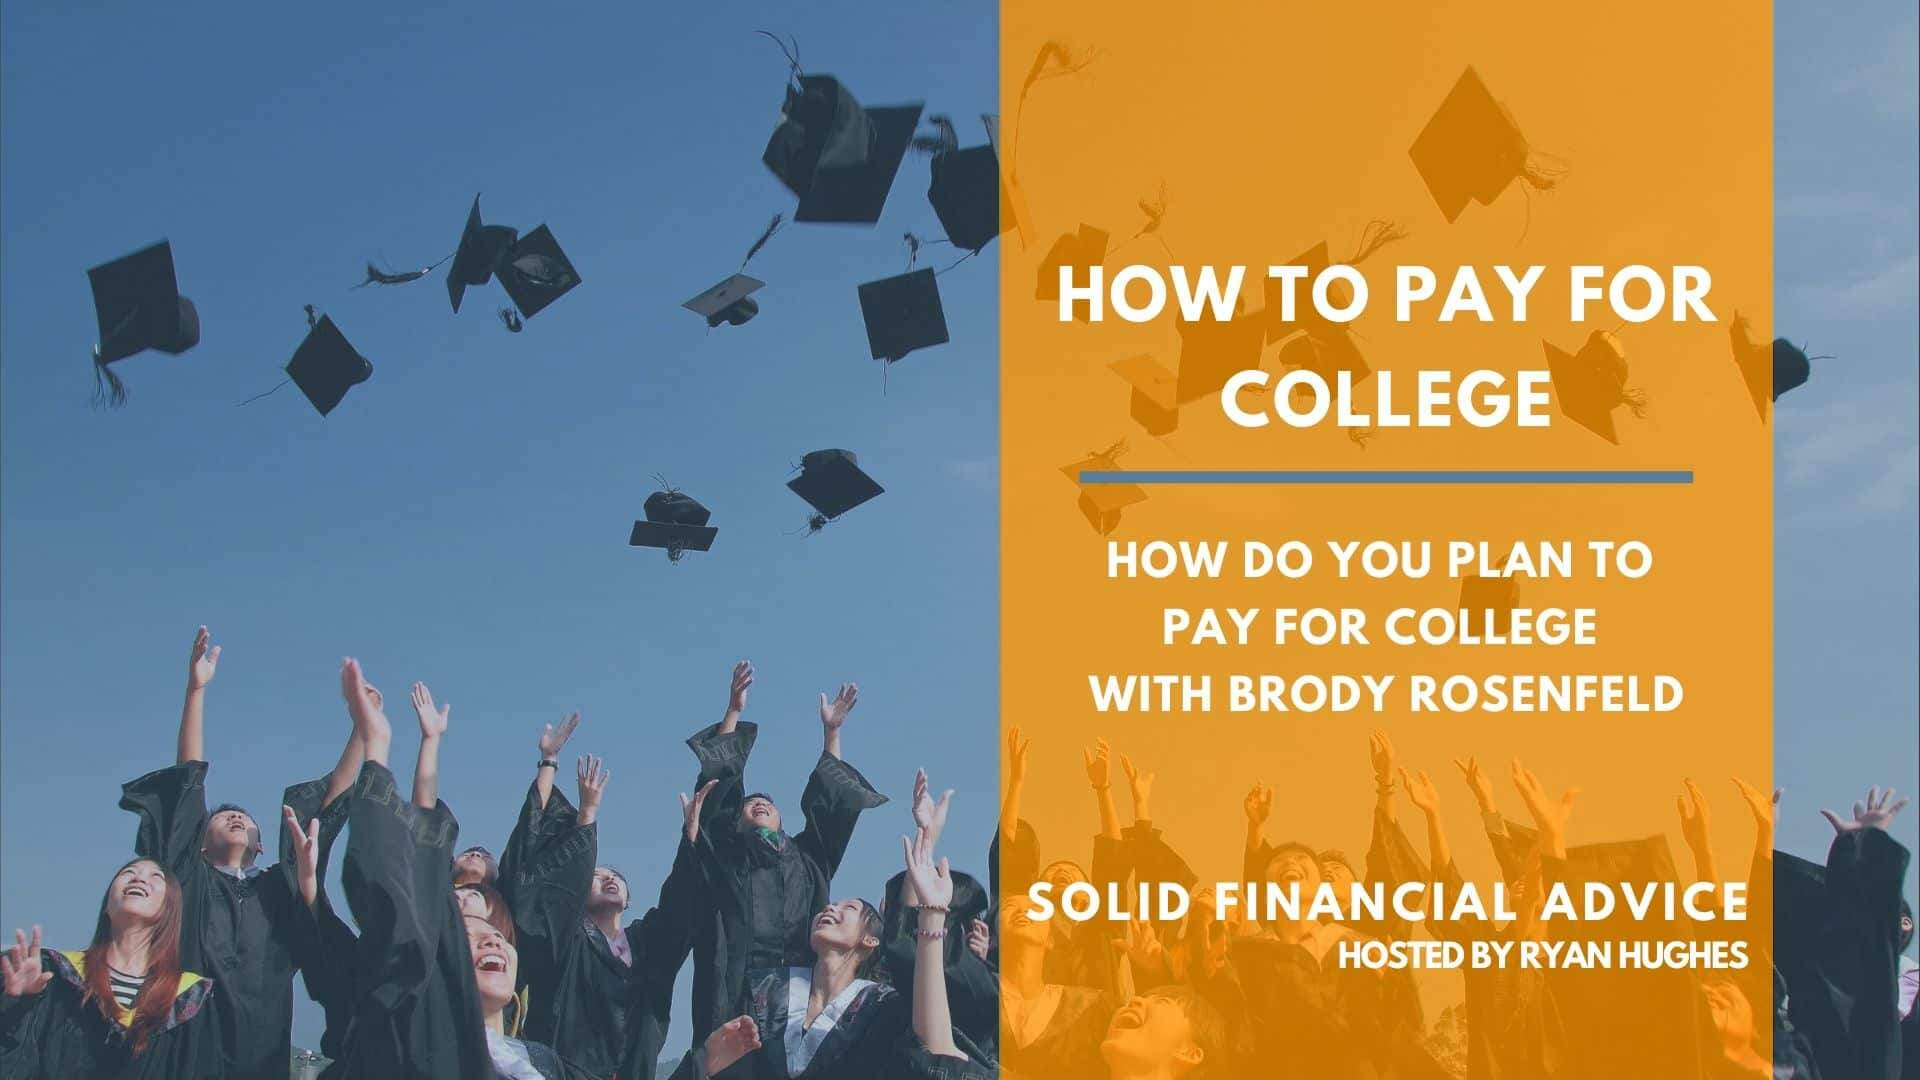 How To Pay For College With Brody Rosenfeld